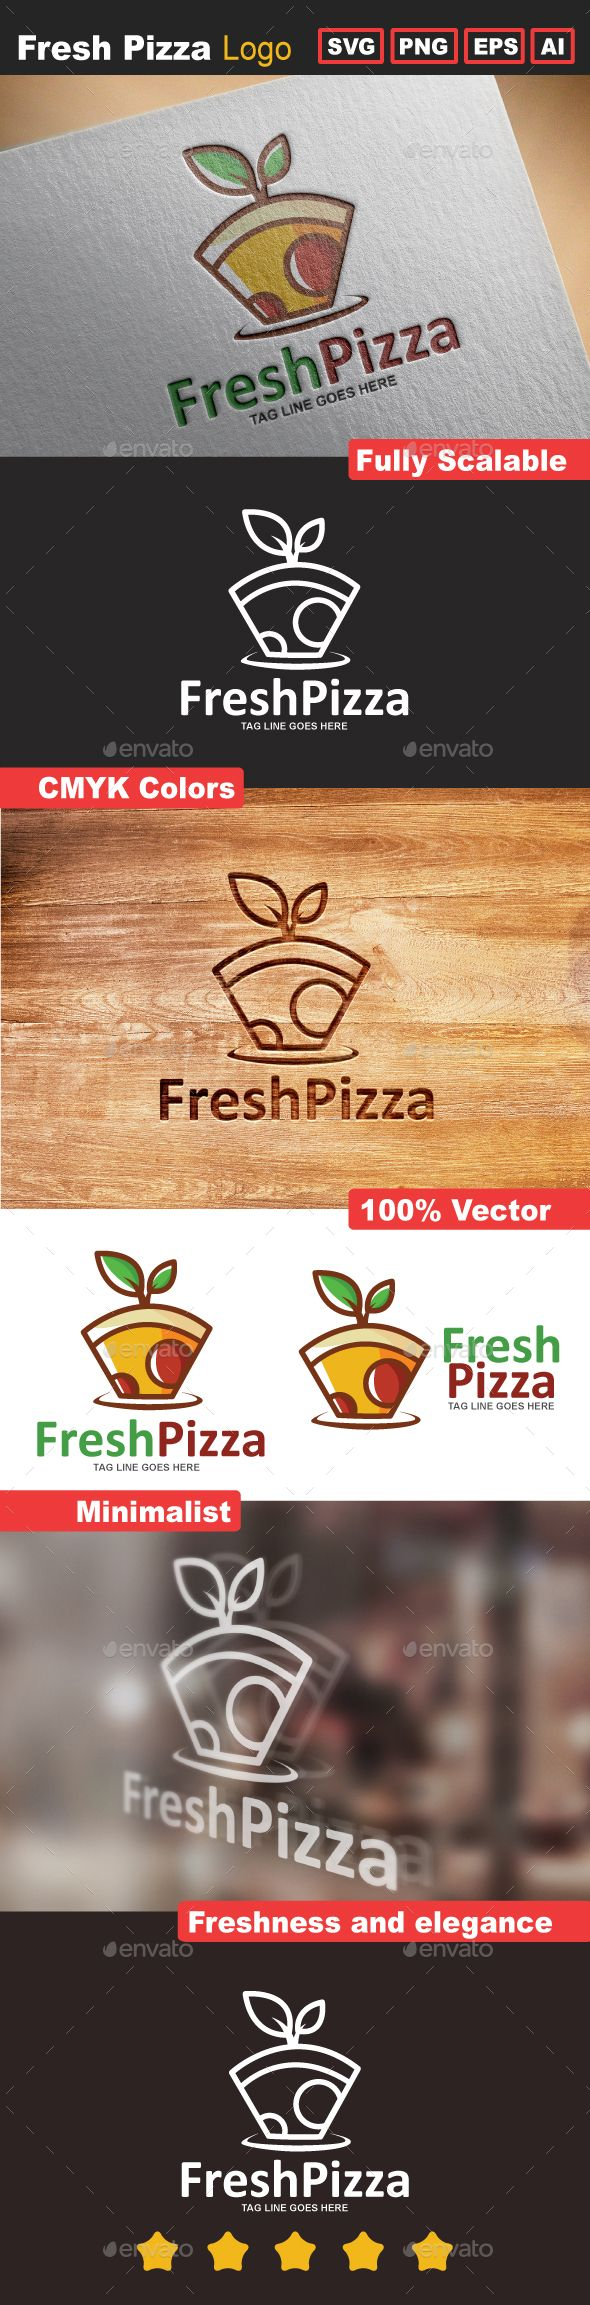 Fresh Pizza Logo Template - Food Logo Templates Download here : http://graphicriver.net/item/fresh-pizza-logo-template/15703809?s_rank=190&ref=Al-fatih